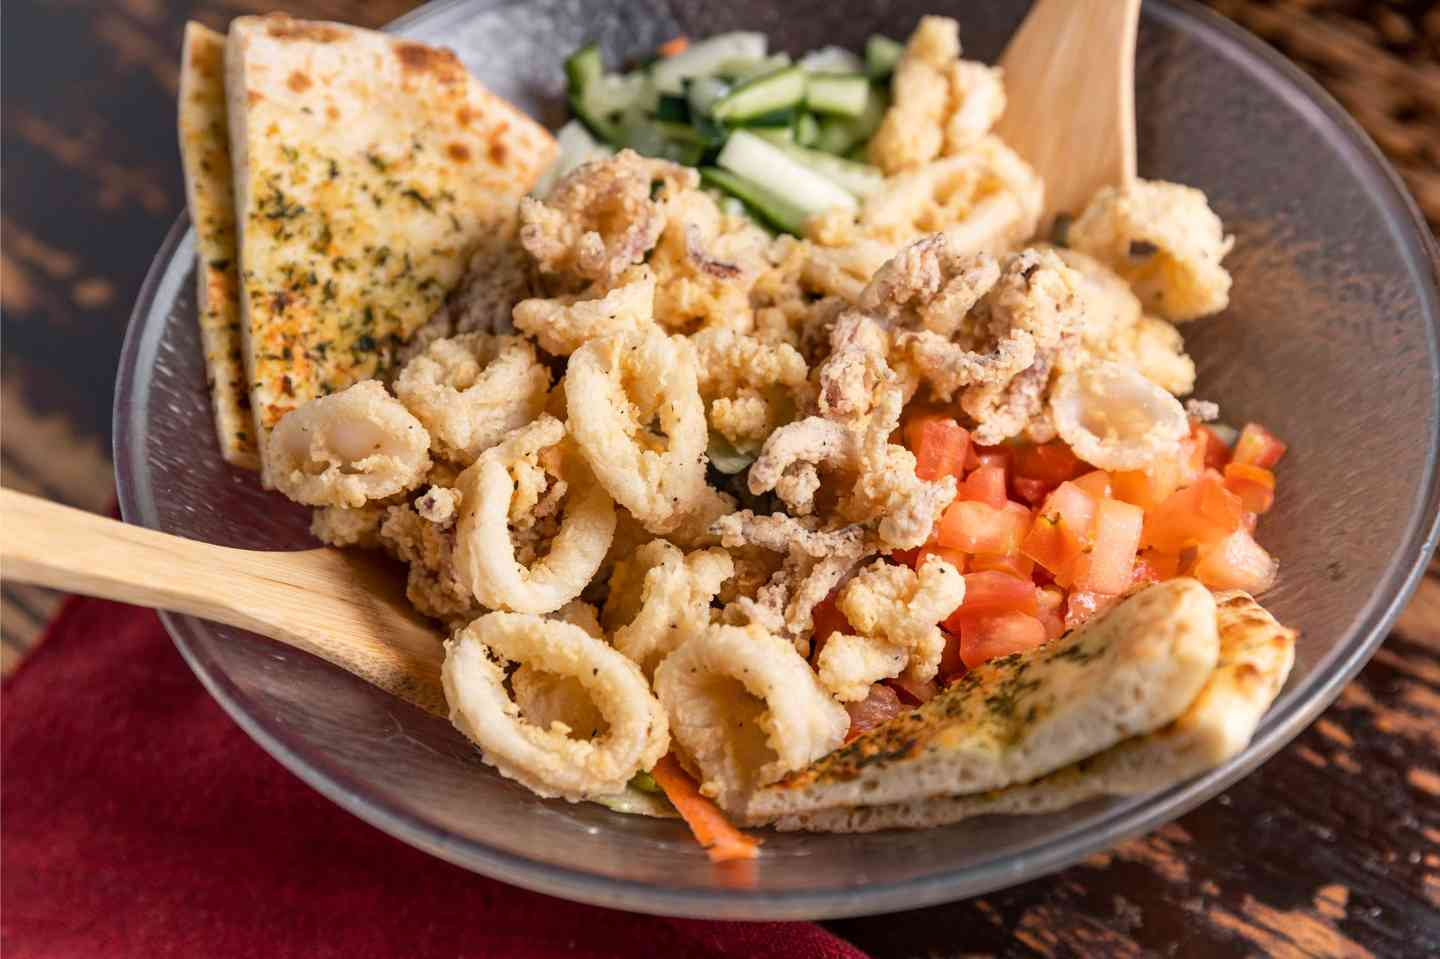 The Mythical Giant Calamari Salad